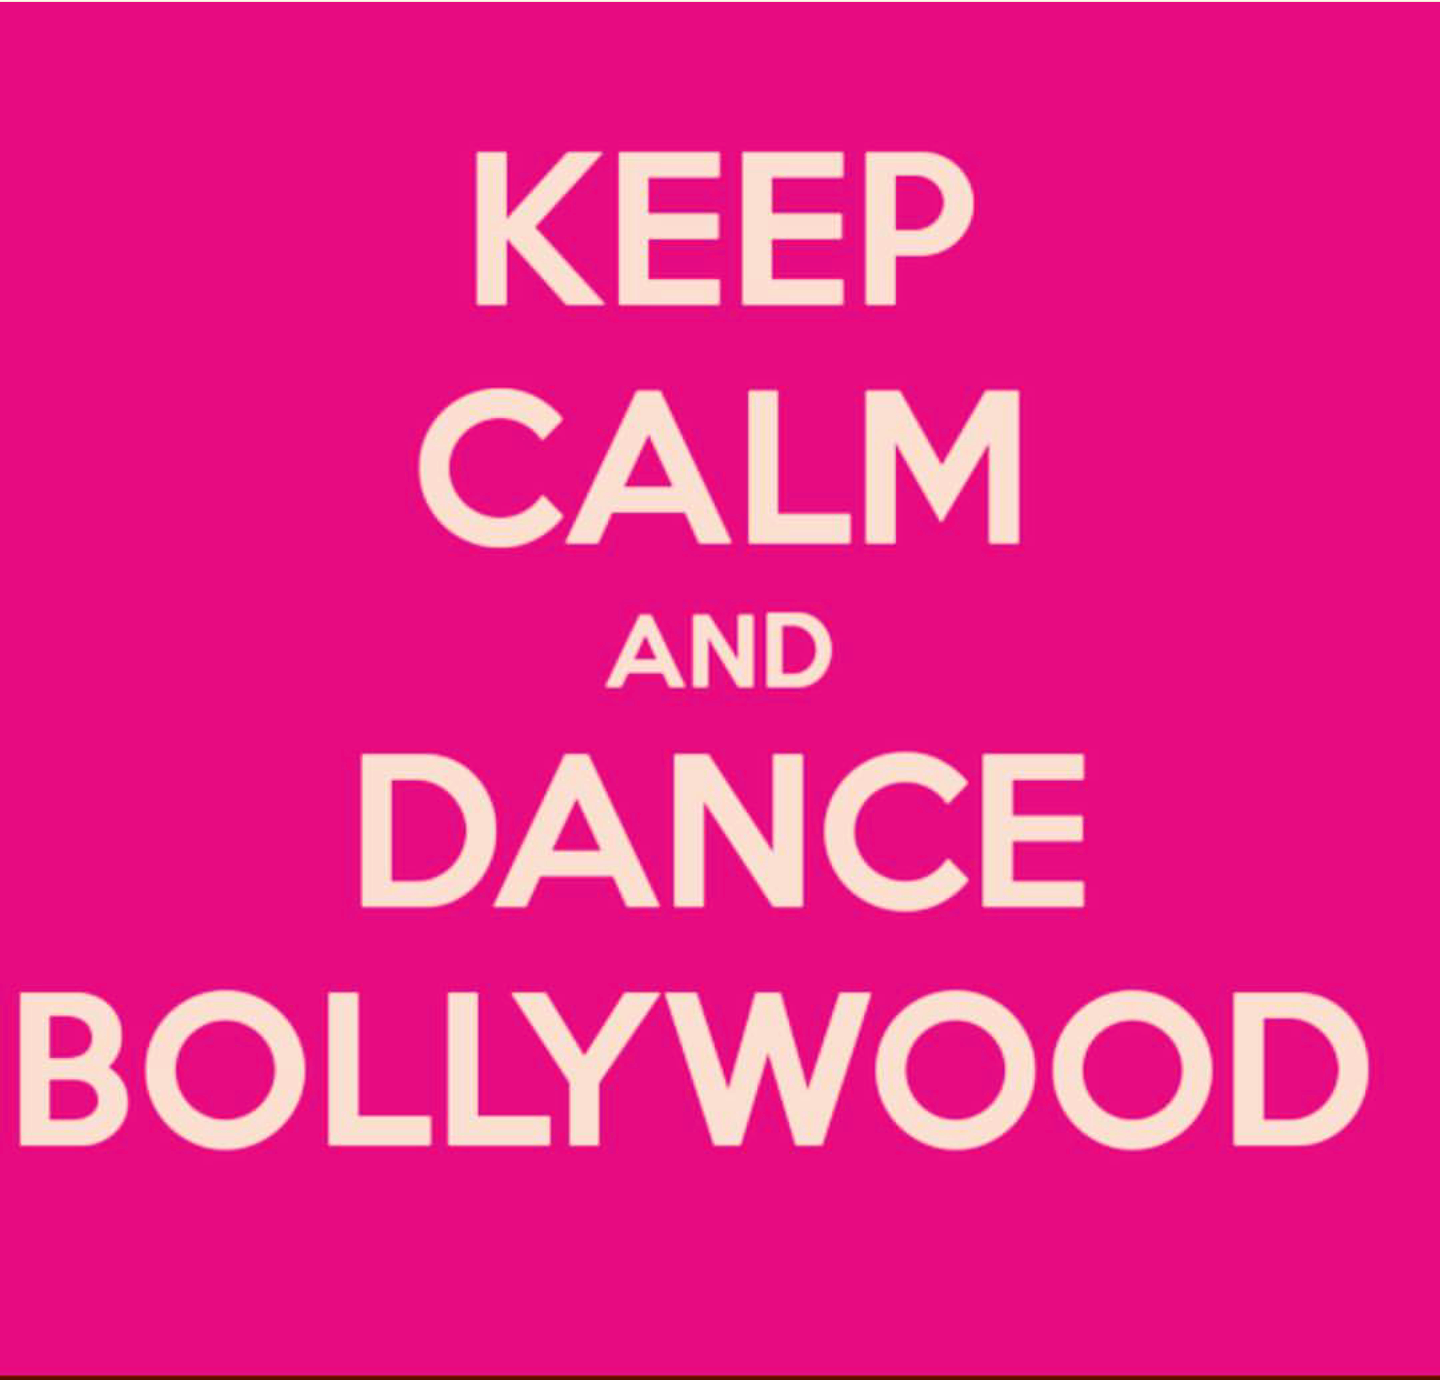 Keep calm & dance bollywood